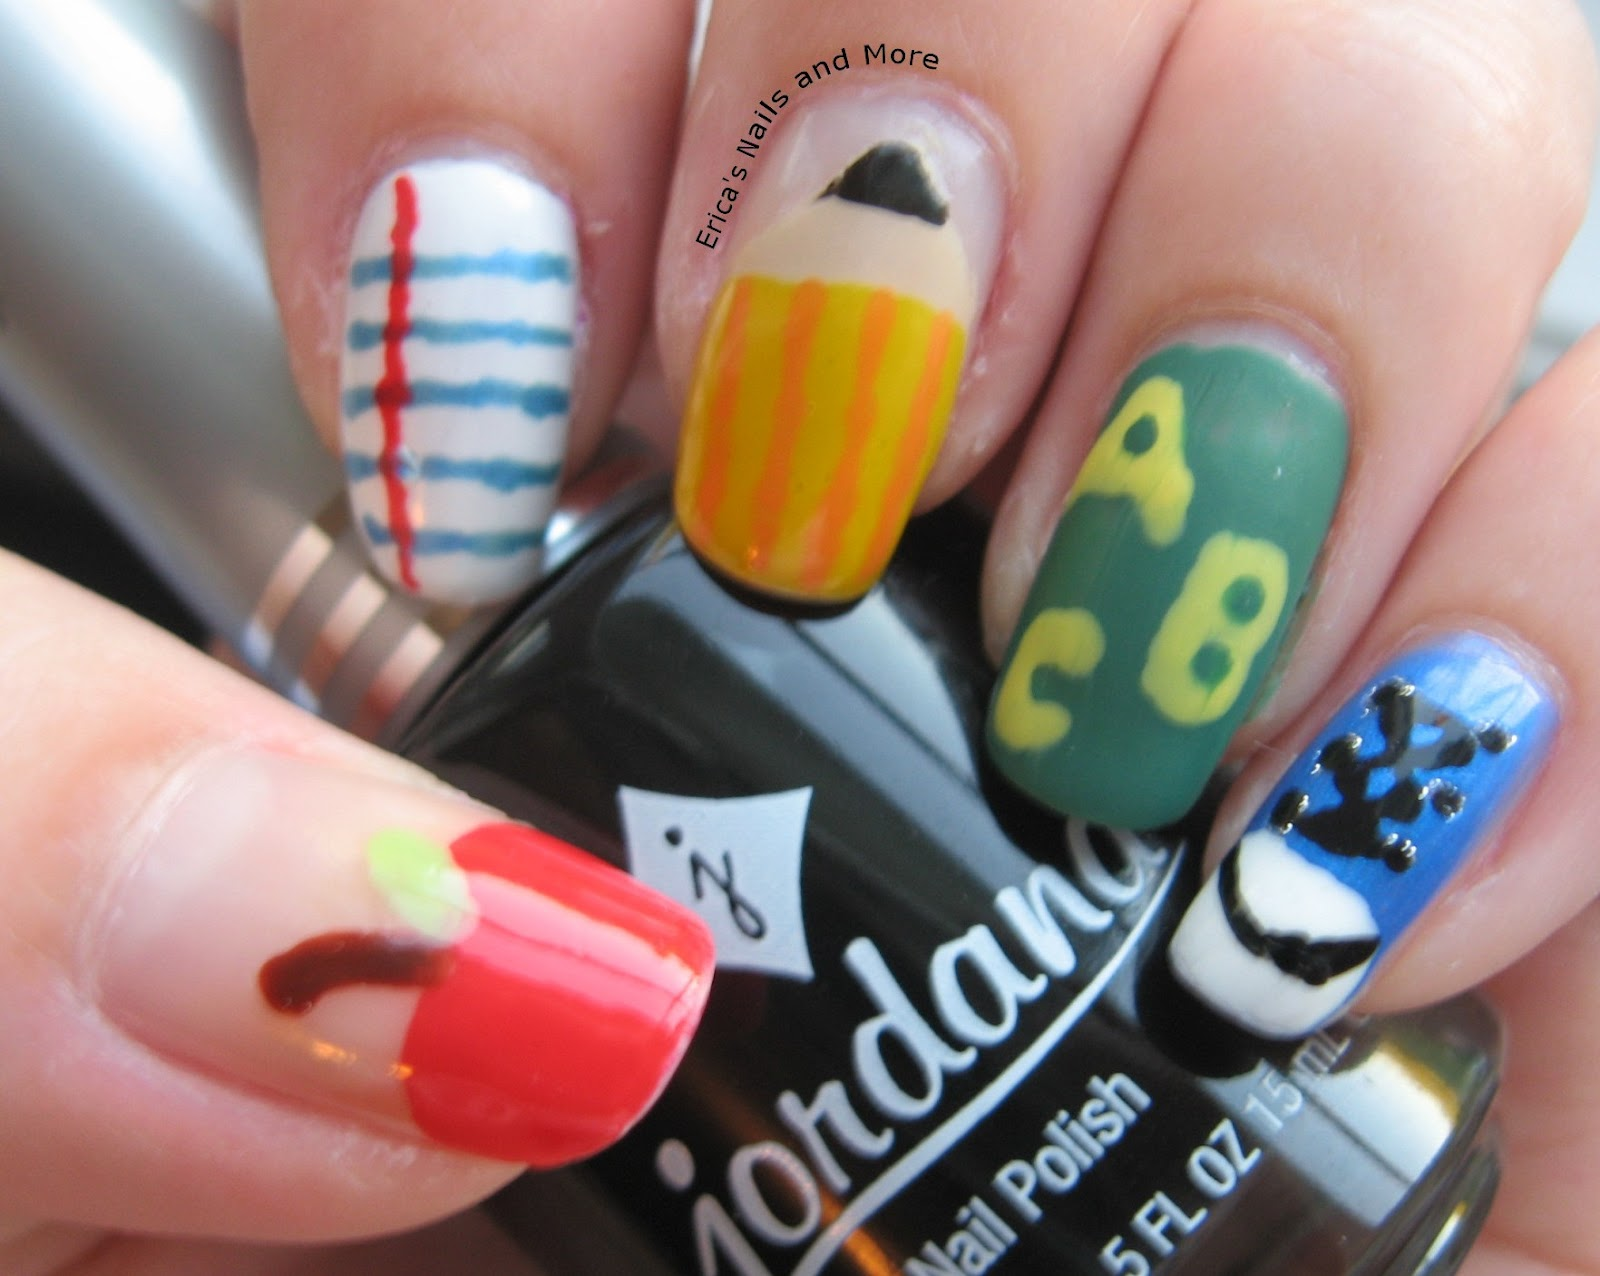 Notd back to school nail art ericas nails and more notd back to school nail art prinsesfo Gallery